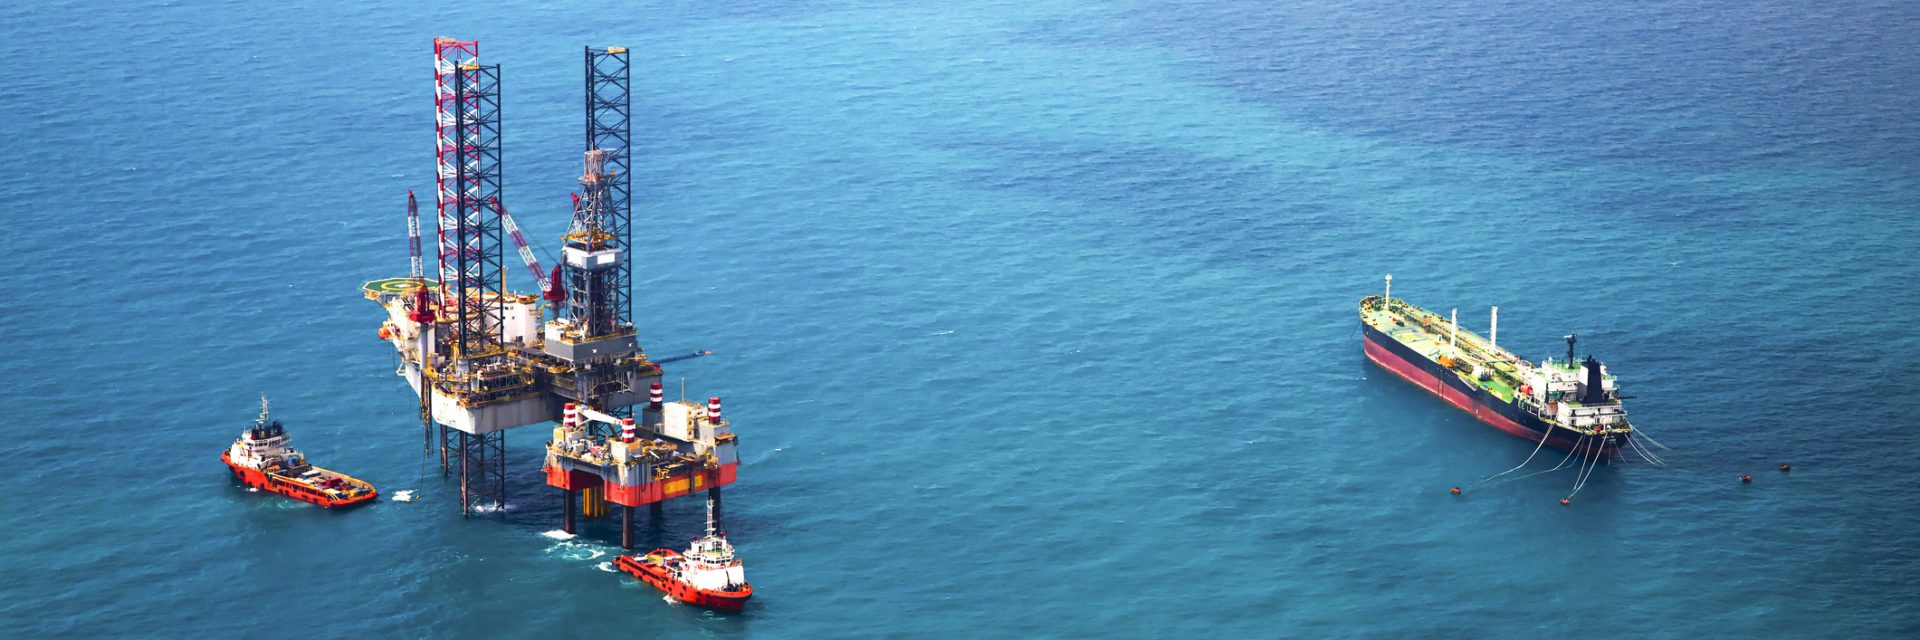 Kuwait National Petroleum Company - Oil rig in the gulf aerial view